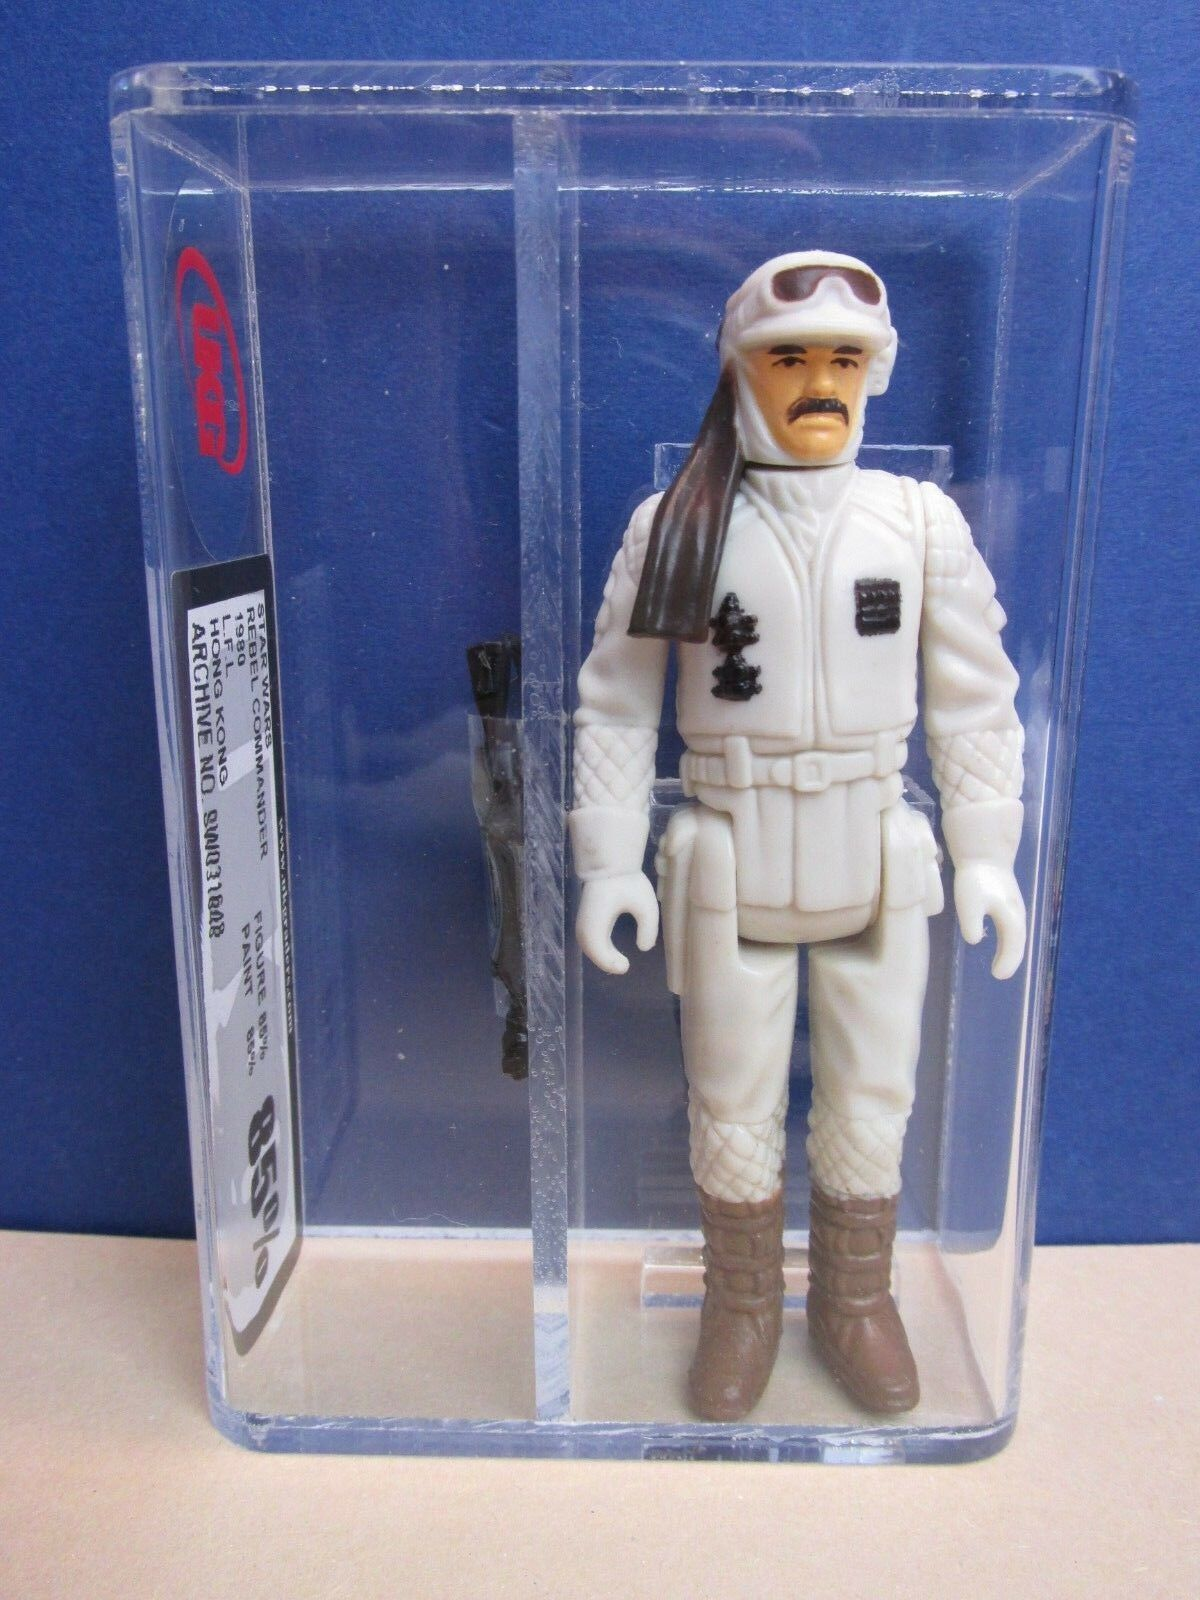 Star wars VINTAGE hoth REBEL COMMANDER ACTION FIGURE HK original UKG not AFA